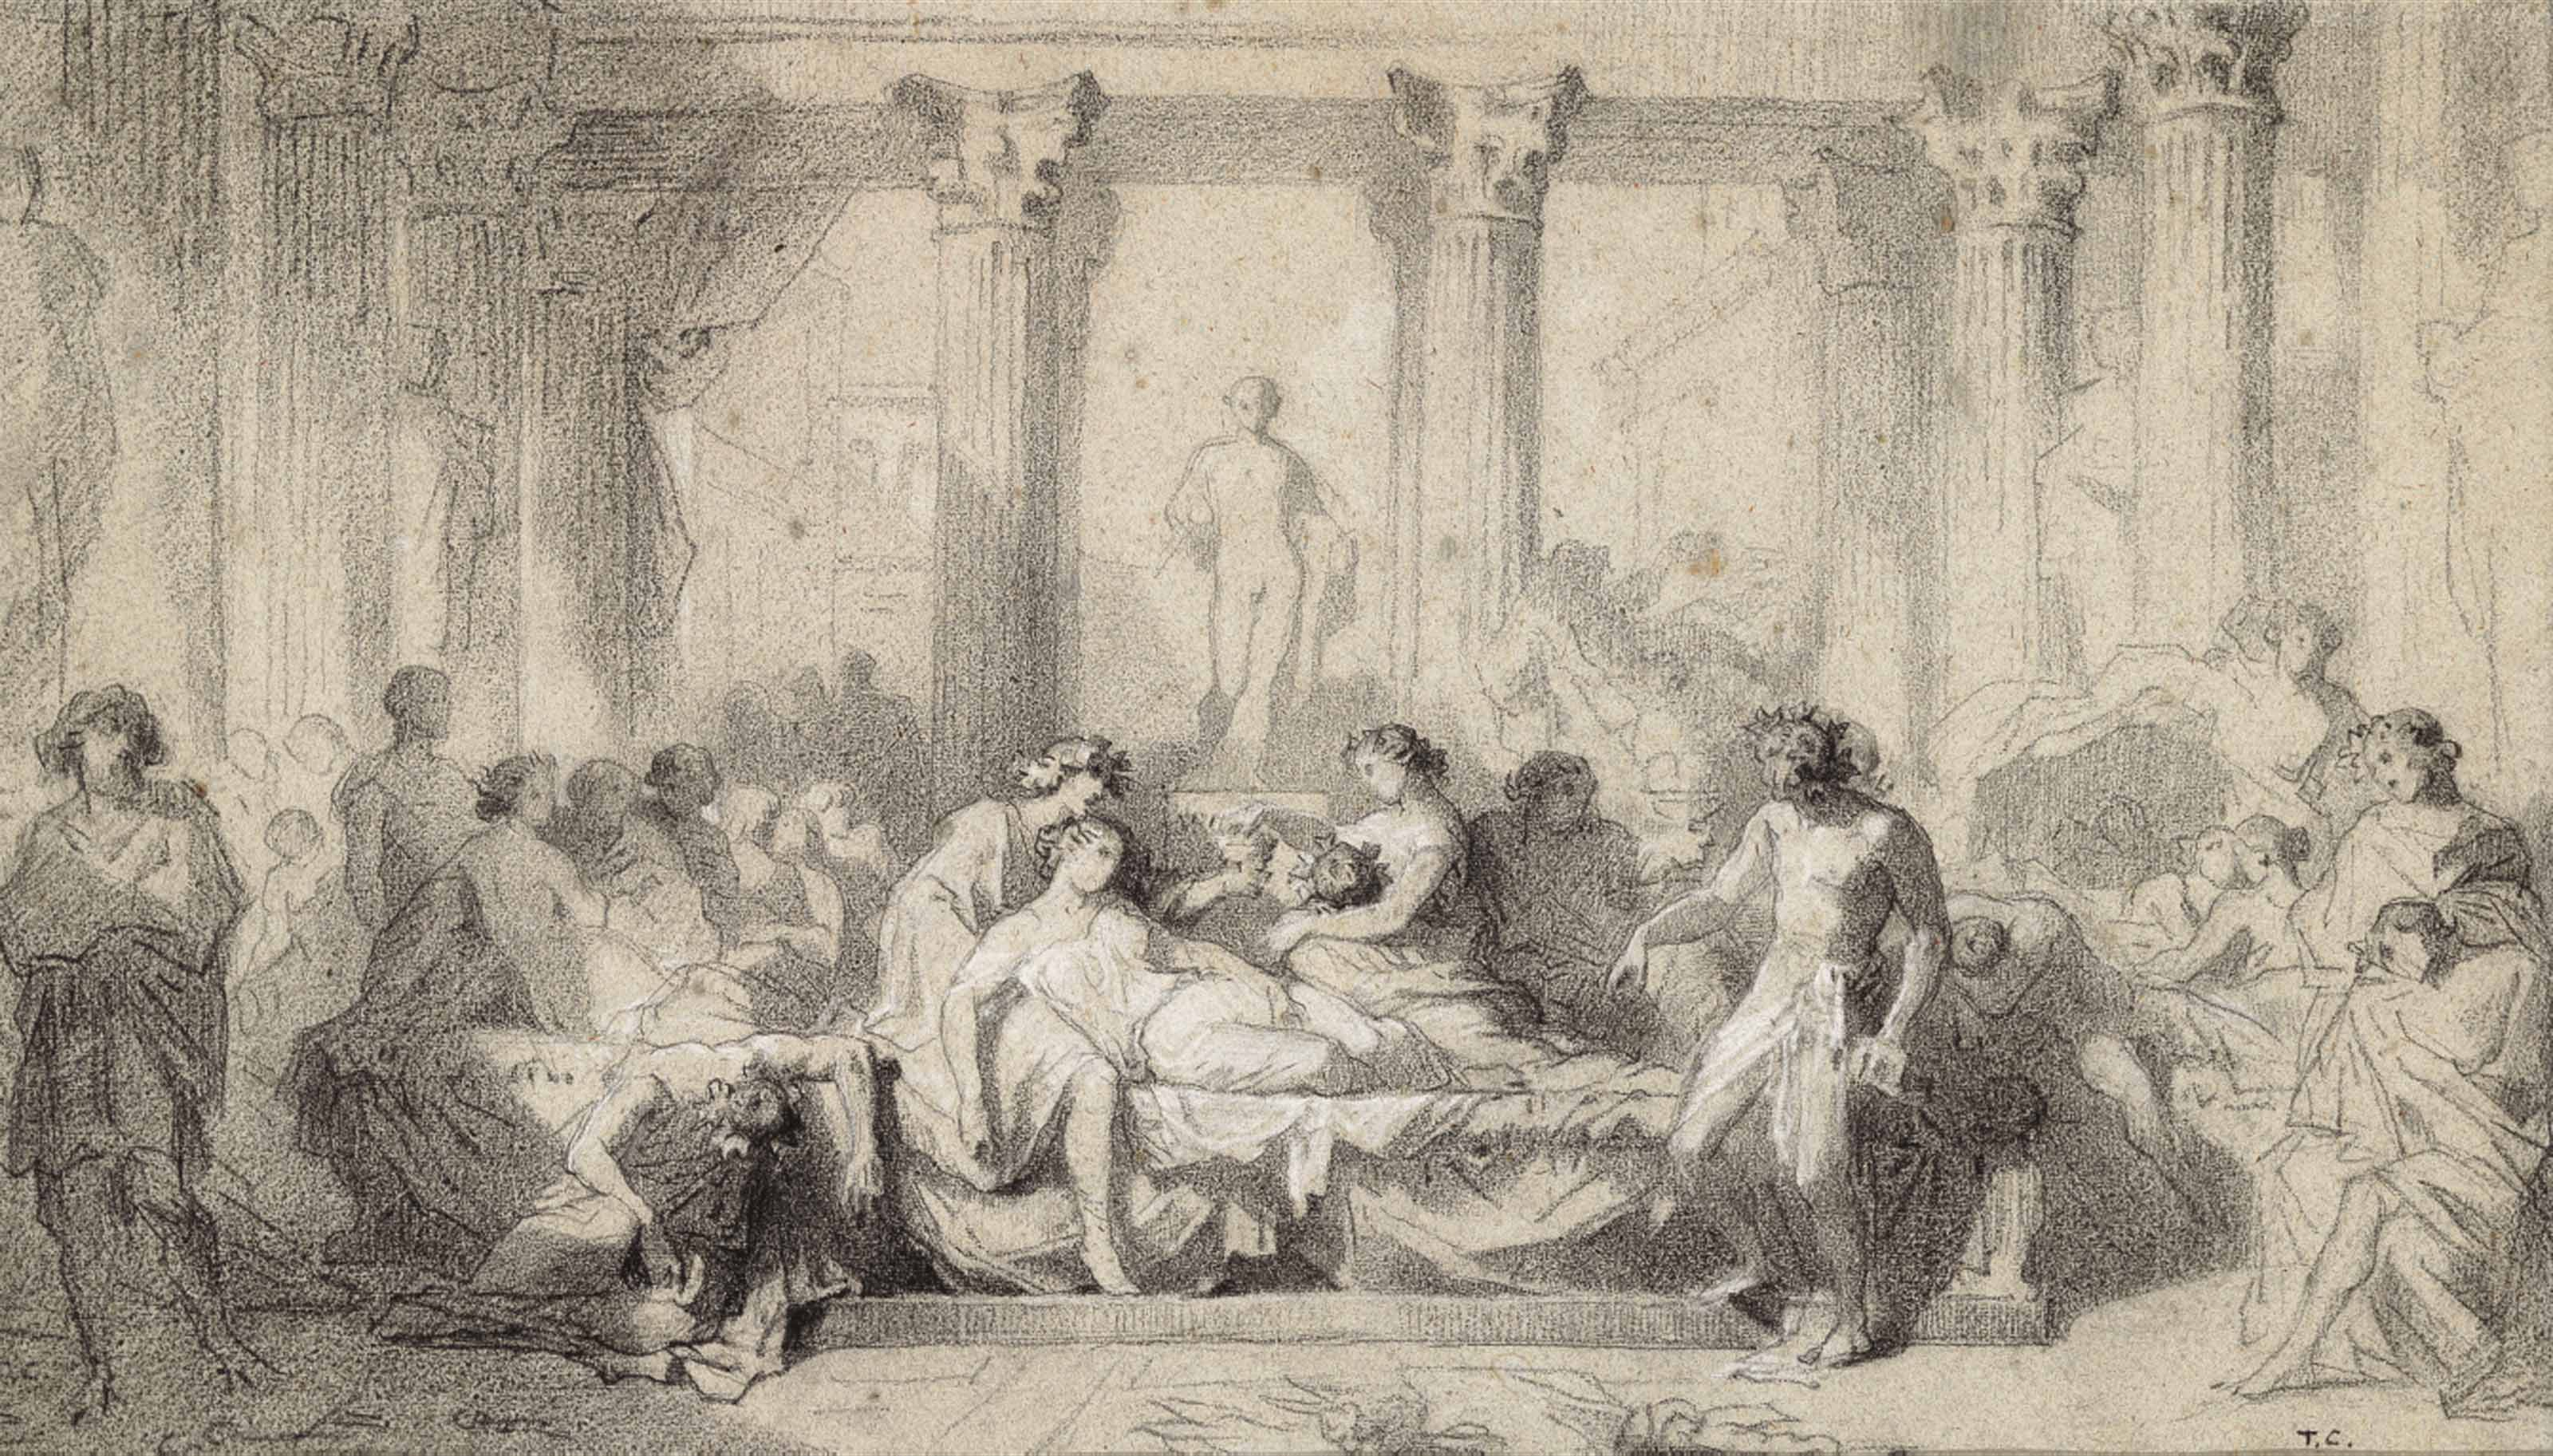 Study for 'The Decadence of the Romans'